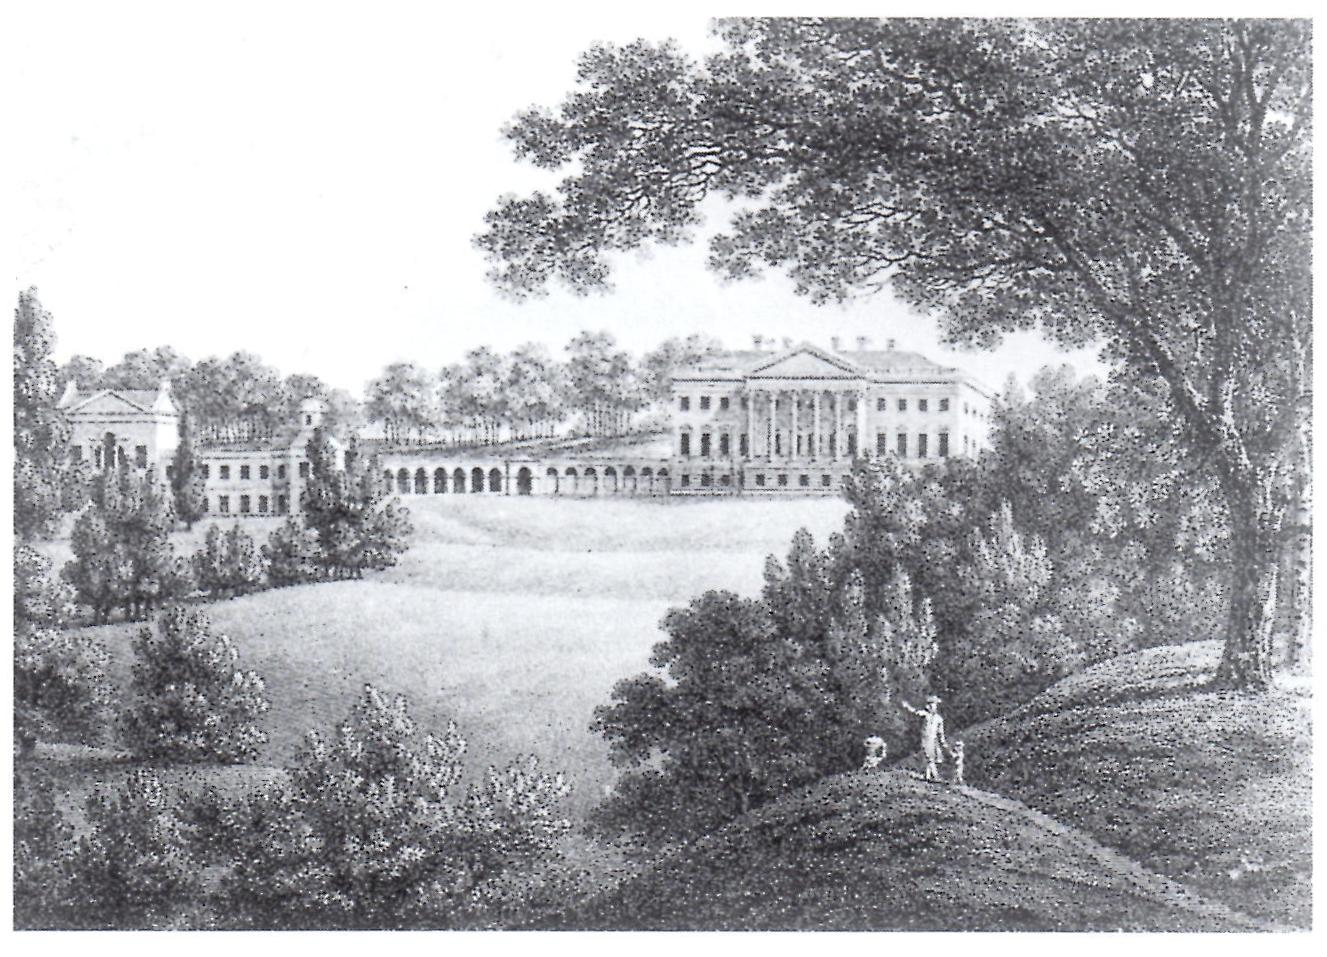 File:Prior Park 1785 drawing.jpg - Wikimedia Commons